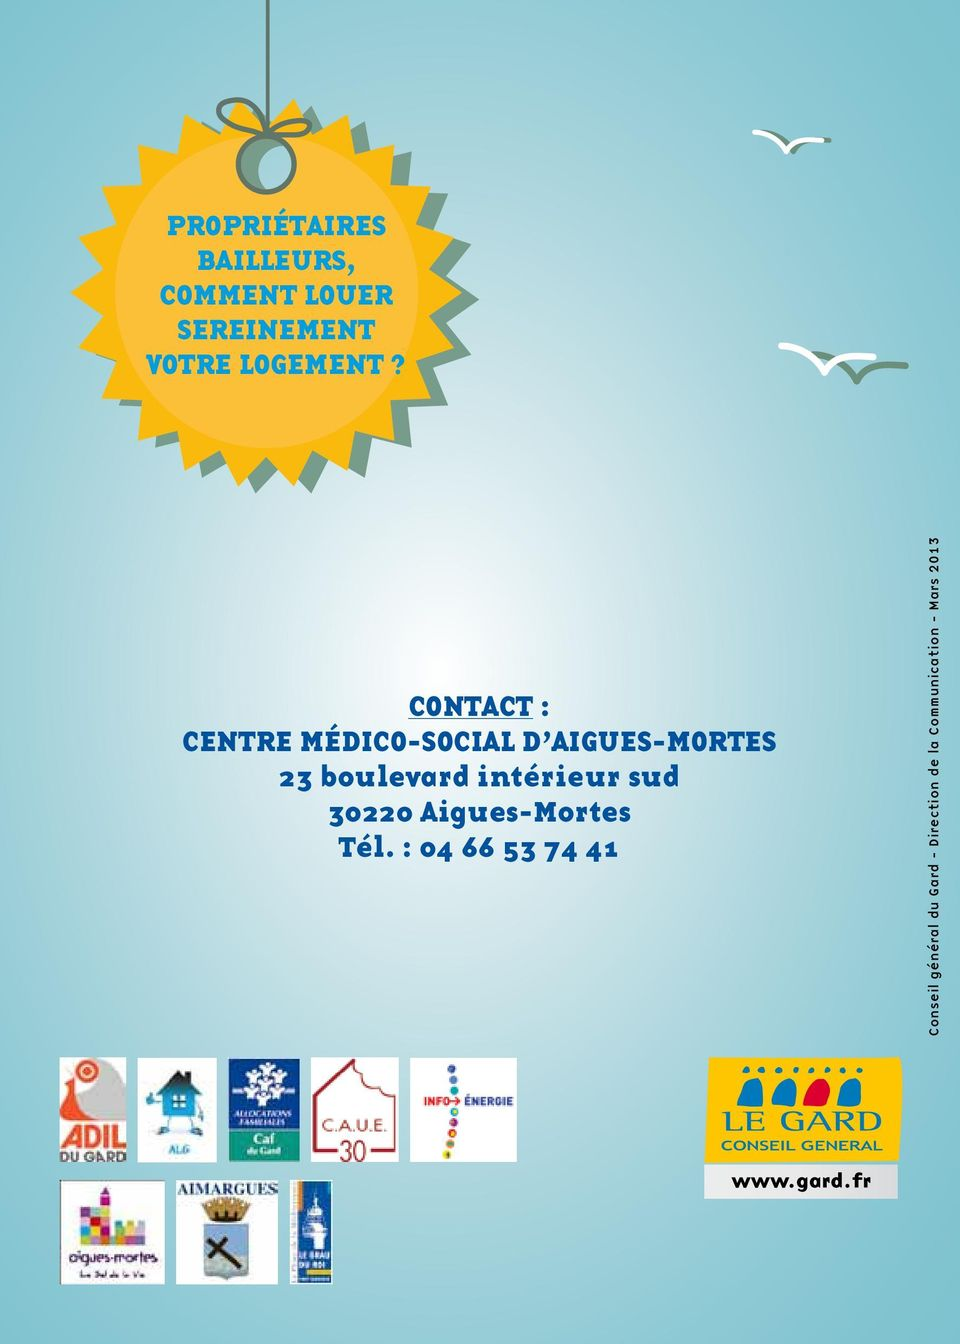 Contact : centre médico-social d aigues-mortes 23 boulevard